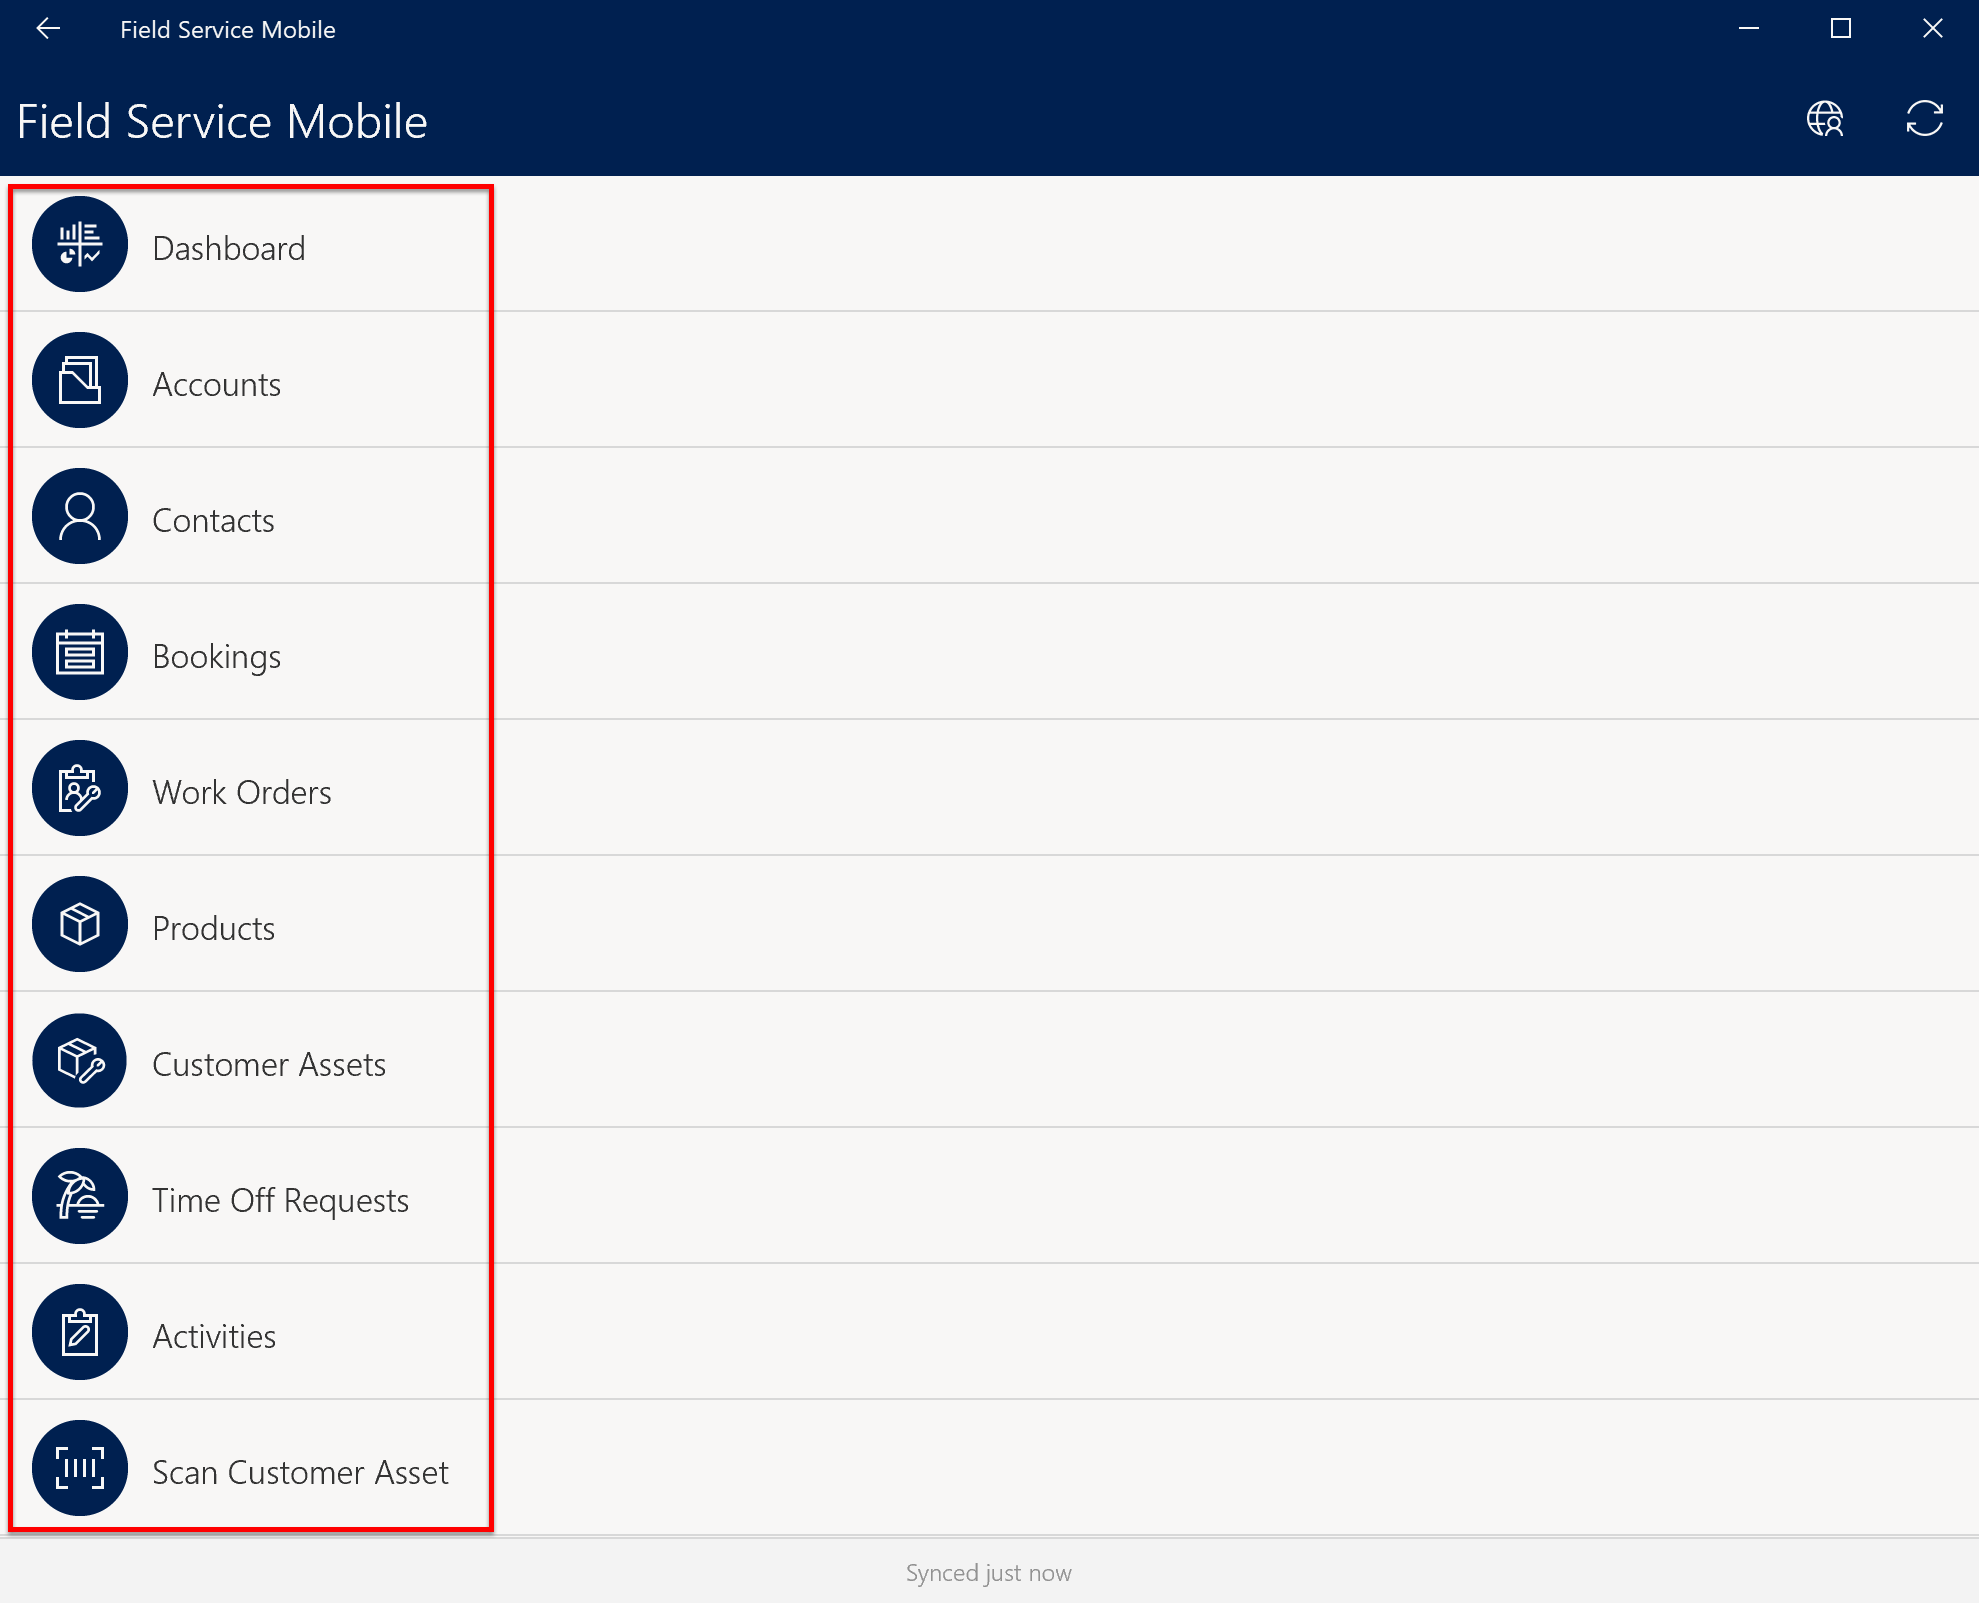 Customizations and configurations for the Field Service mobile app